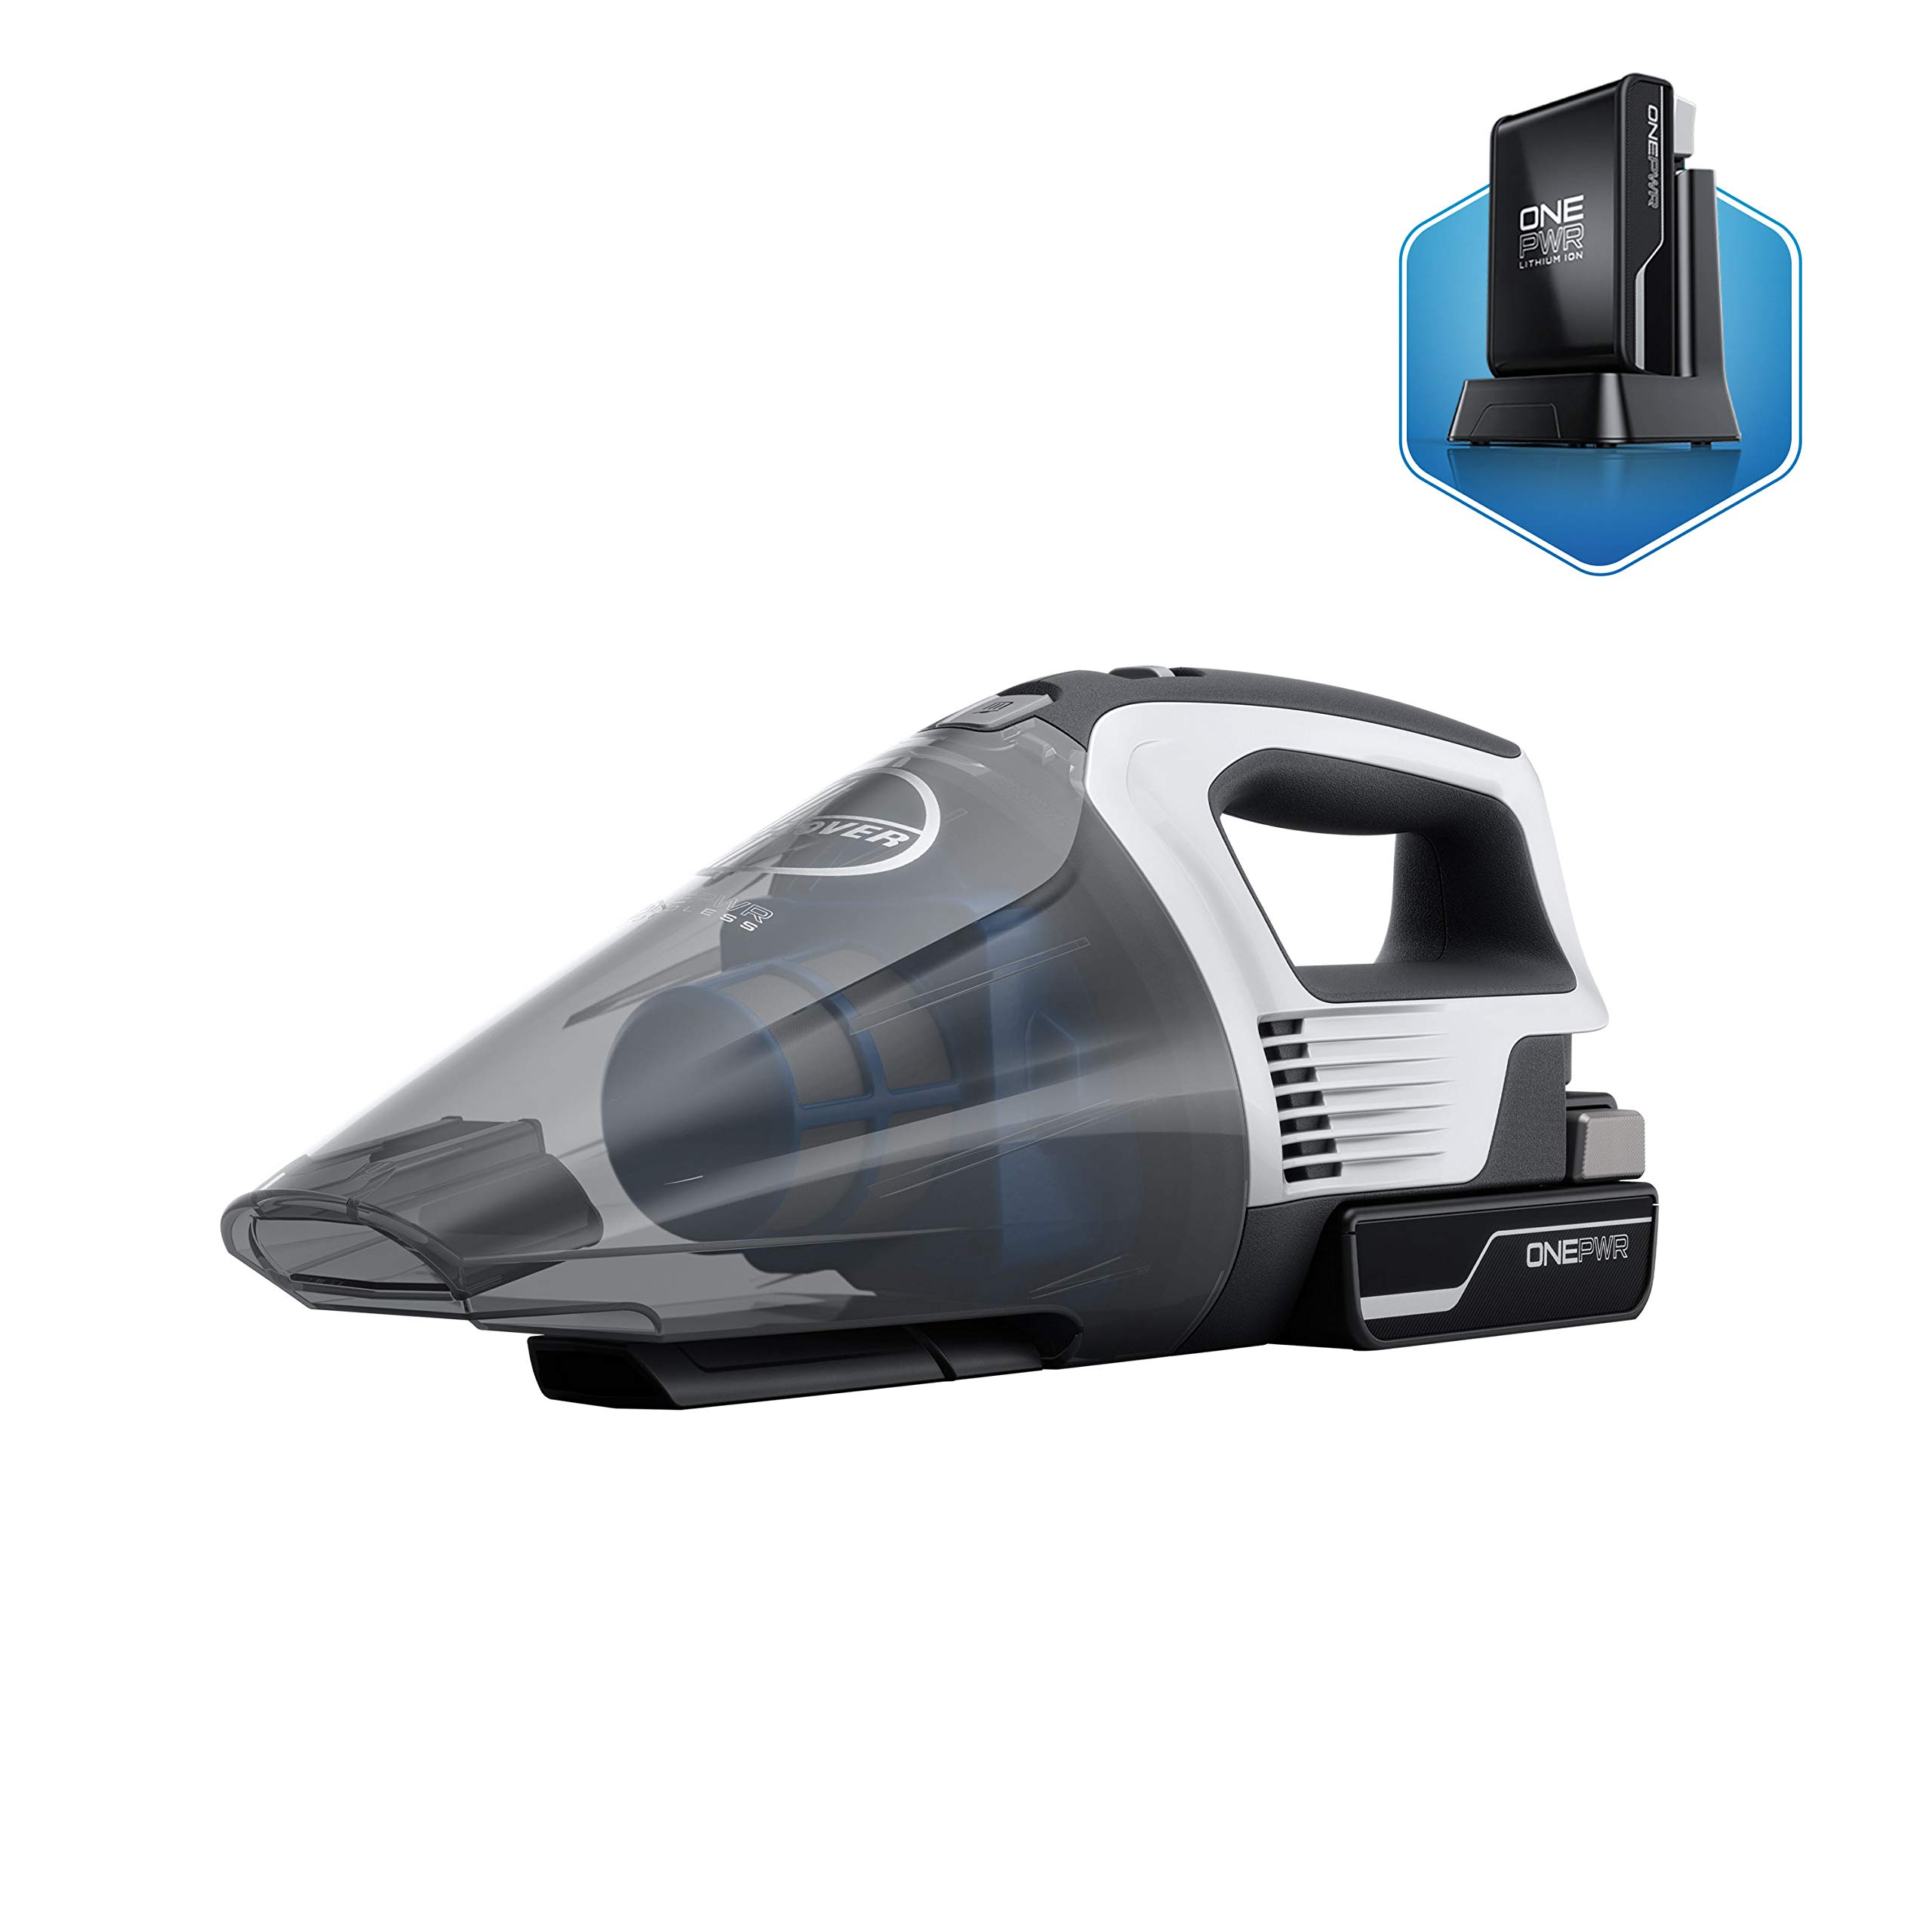 Hoover ONEPWR Cordless Hand Held Vacuum Cleaner, Battery Powered, Lightweight, BH57005, White